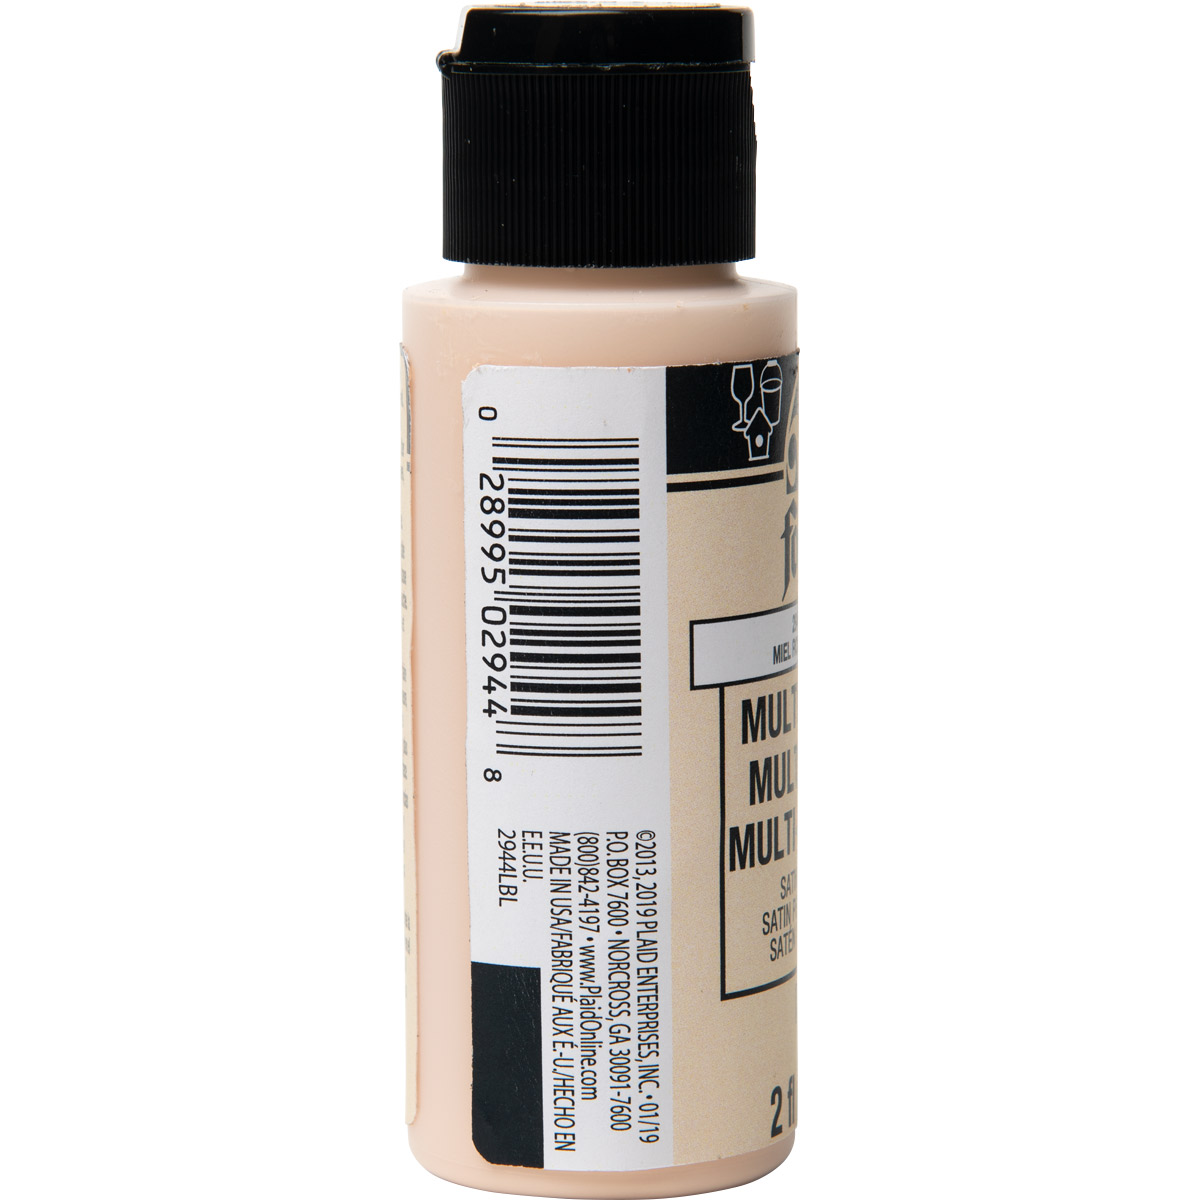 FolkArt ® Multi-Surface Satin Acrylic Paints - Cool Bisque, 2 oz. - 2944